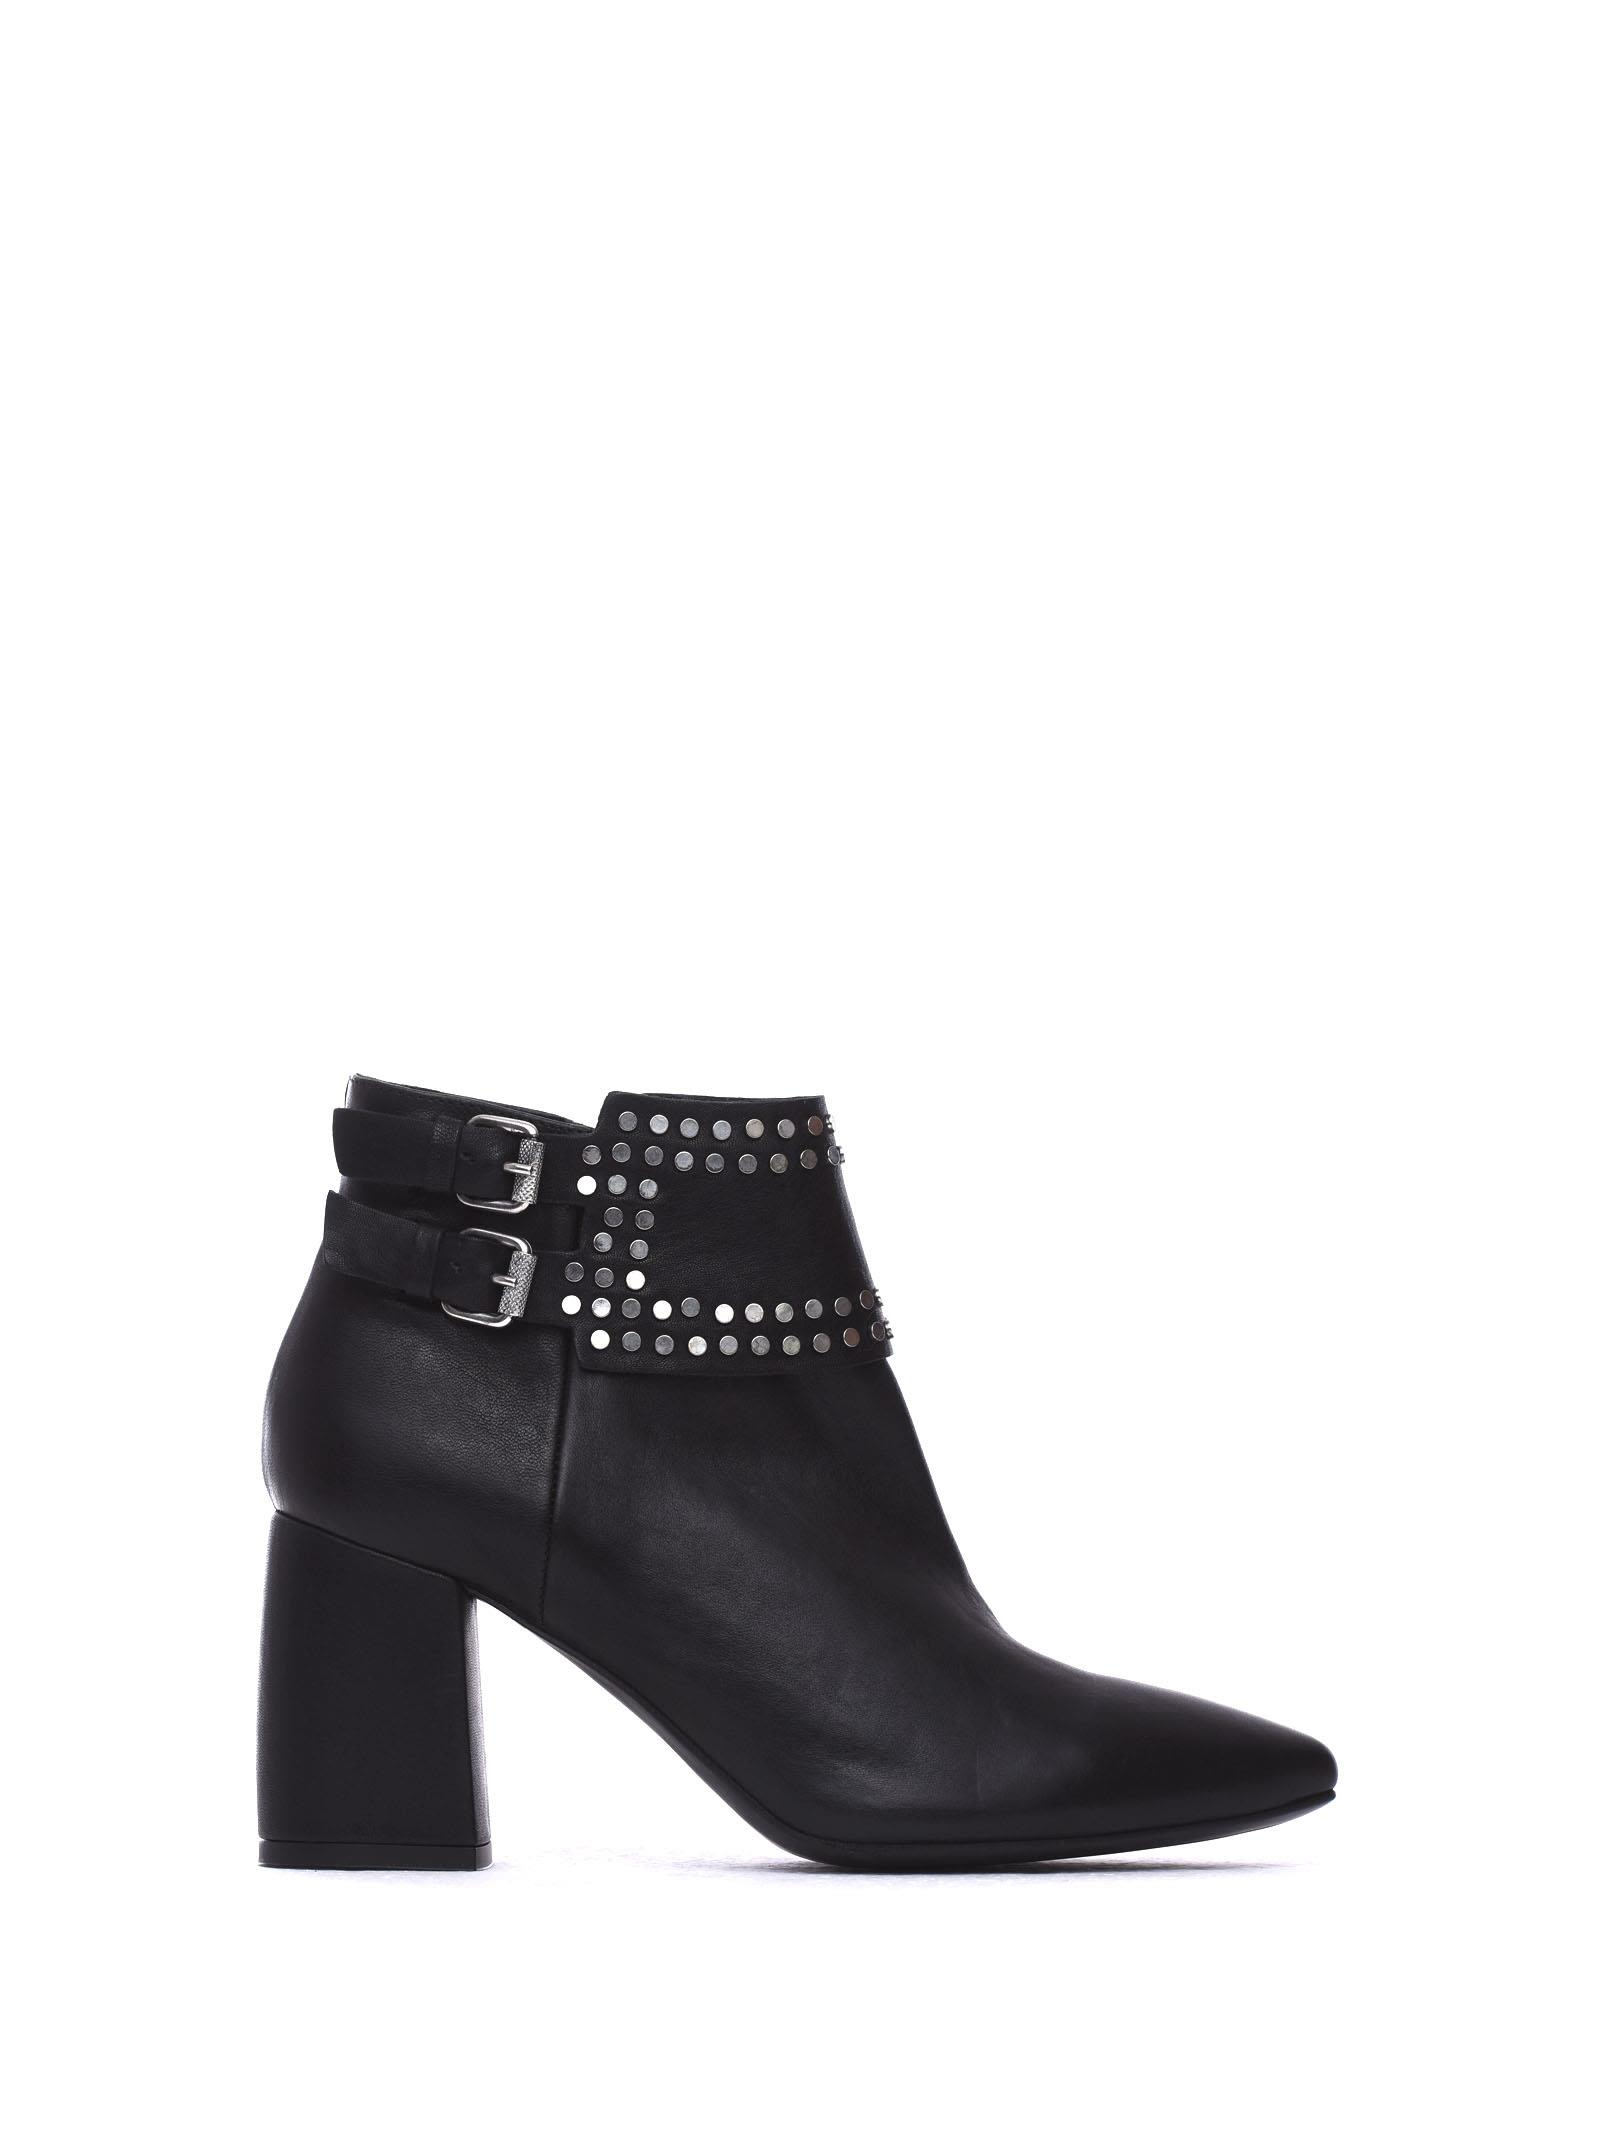 JANET & JANET Matilde Black Ankle Boots in Nero